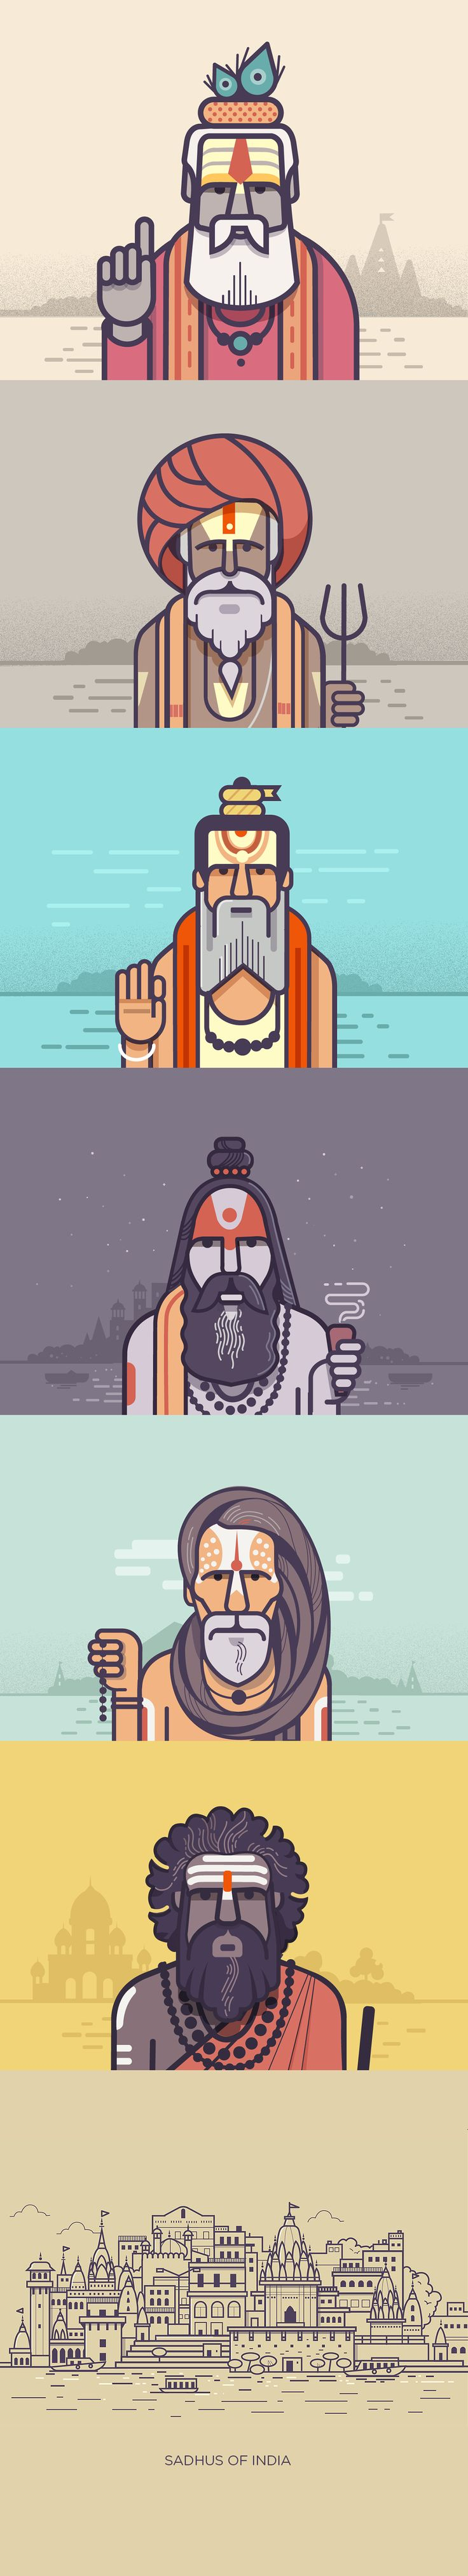 This is a series dedicated to India's 'Holy men' who believe in free spirit. Be it the bright attire, the head gear, or the symbols painted on their forehead, each of them are unique embodiements of the philosophies they believe in. #graphic #illustration #character #design